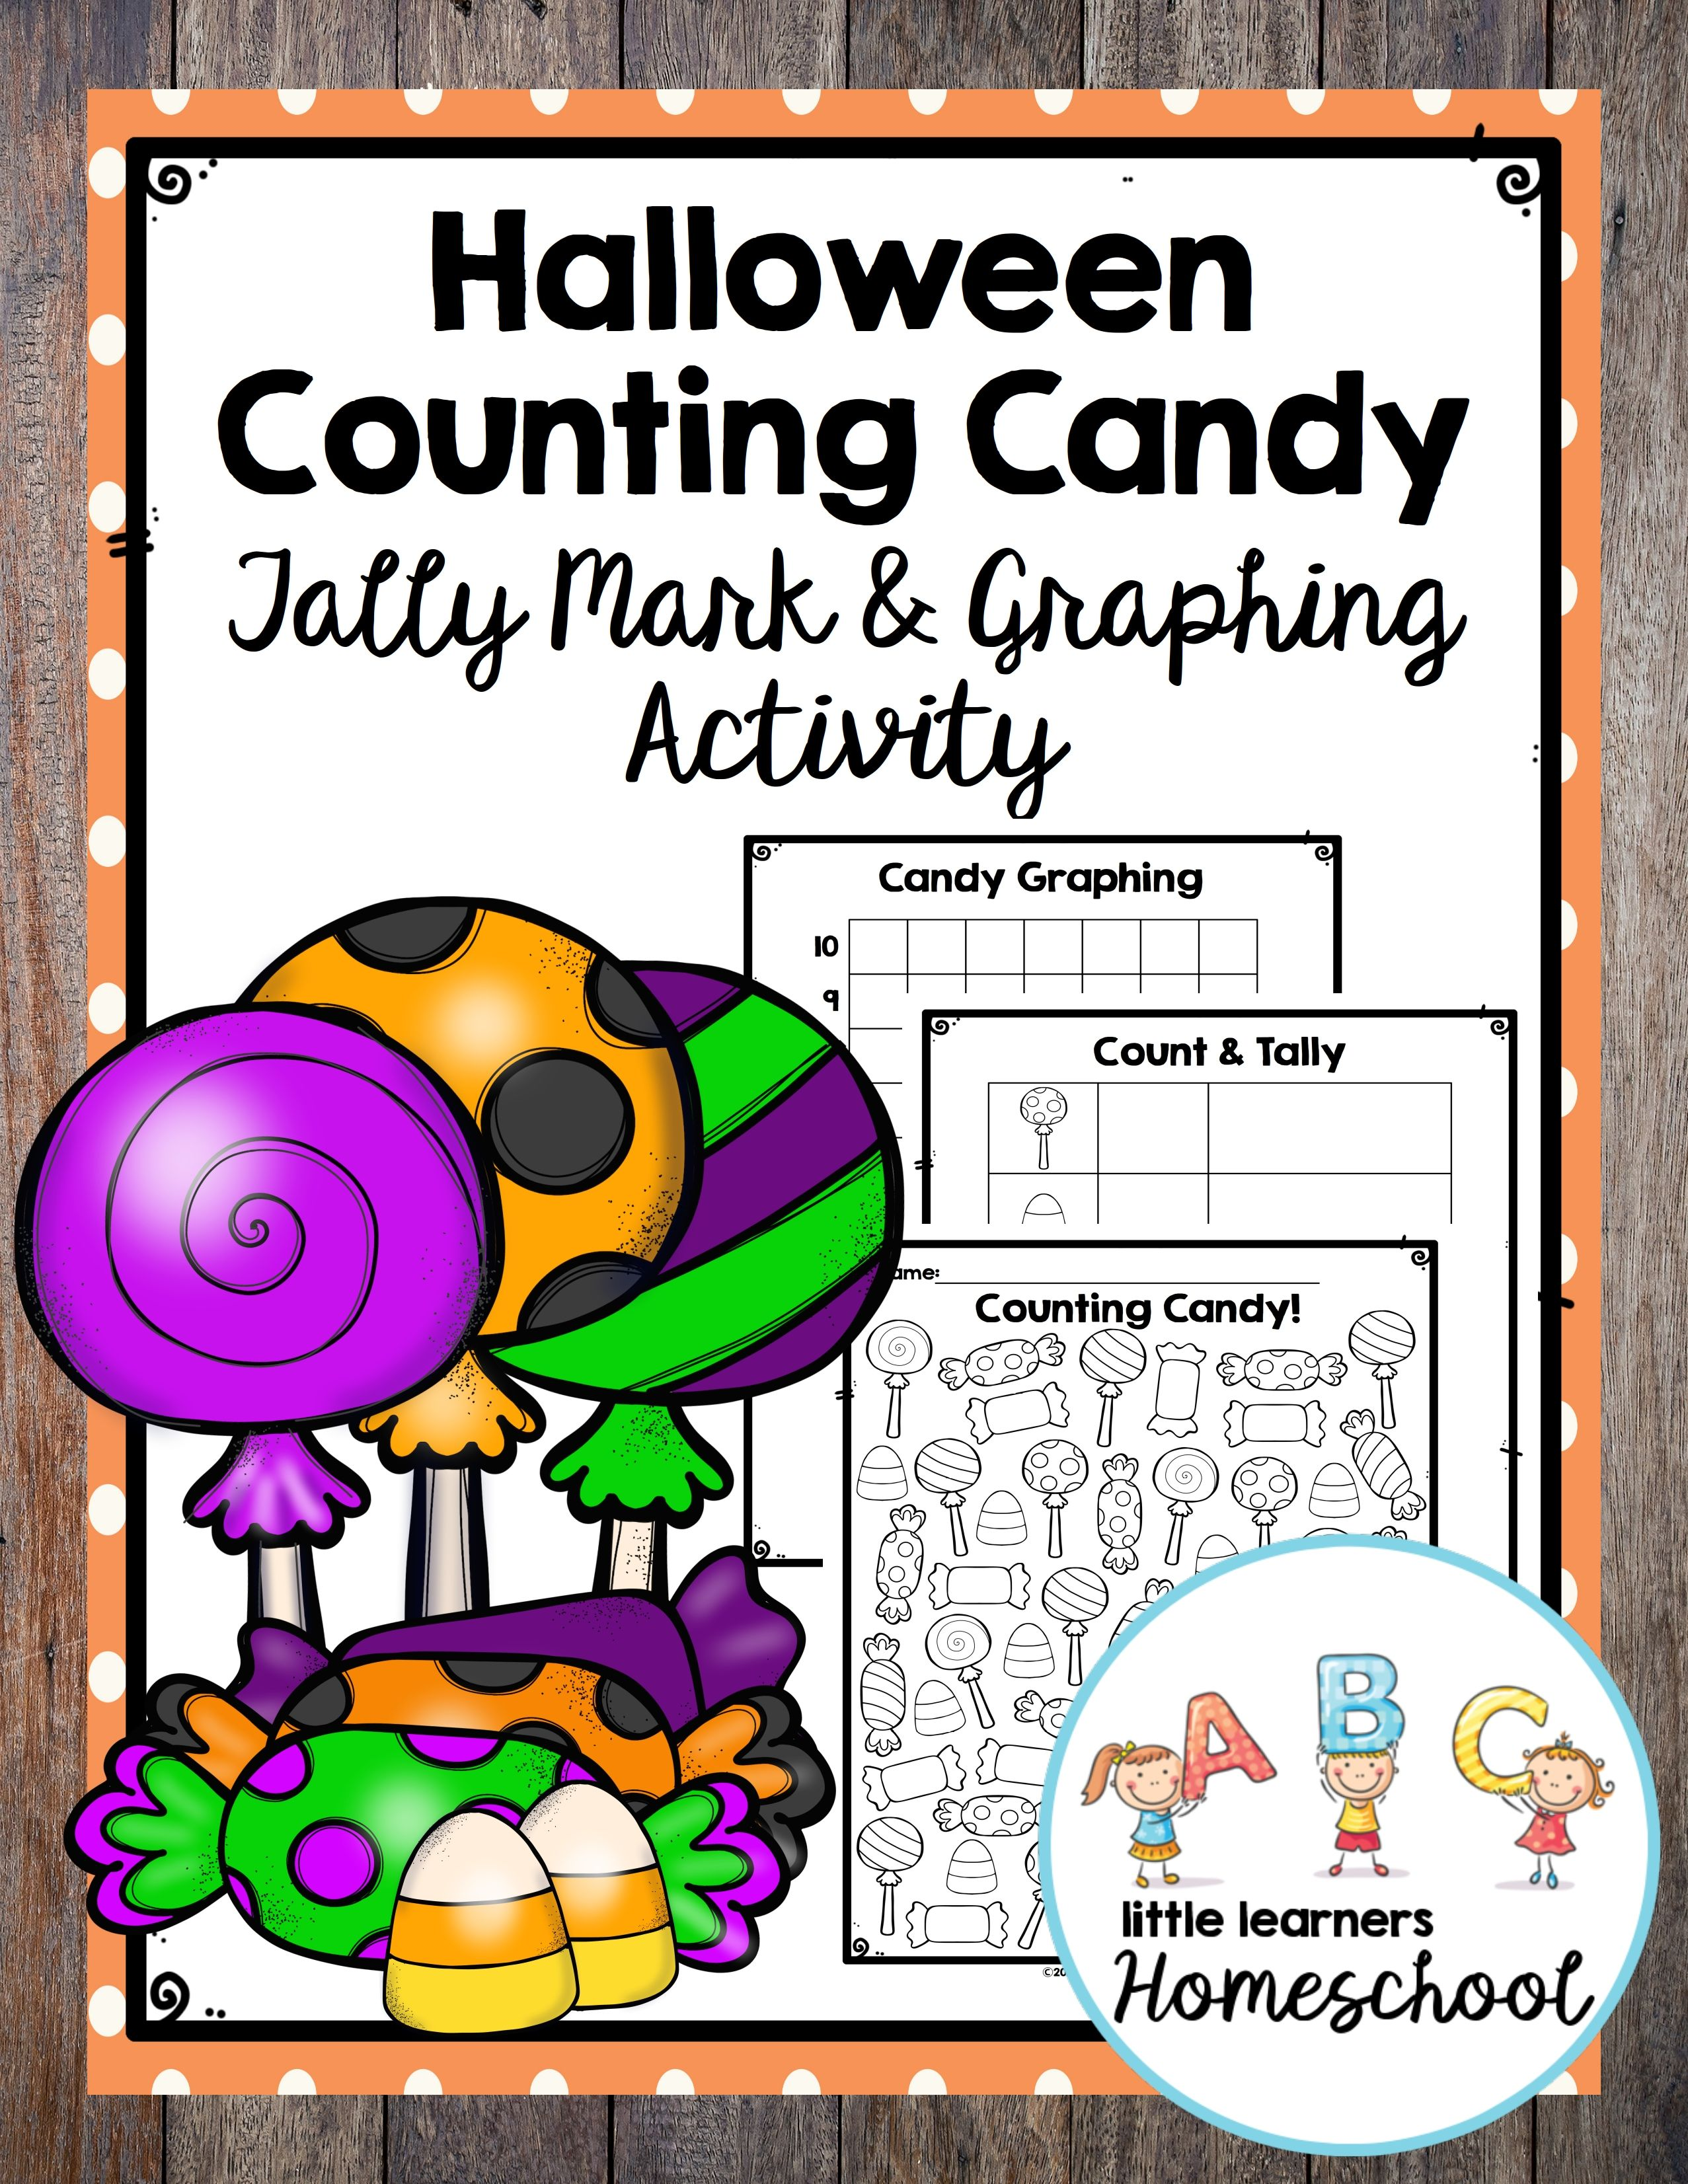 Halloween Counting Candy Tally Mark Graphing Activity Graphing Activities Halloween Counting Graphing [ 3305 x 2554 Pixel ]